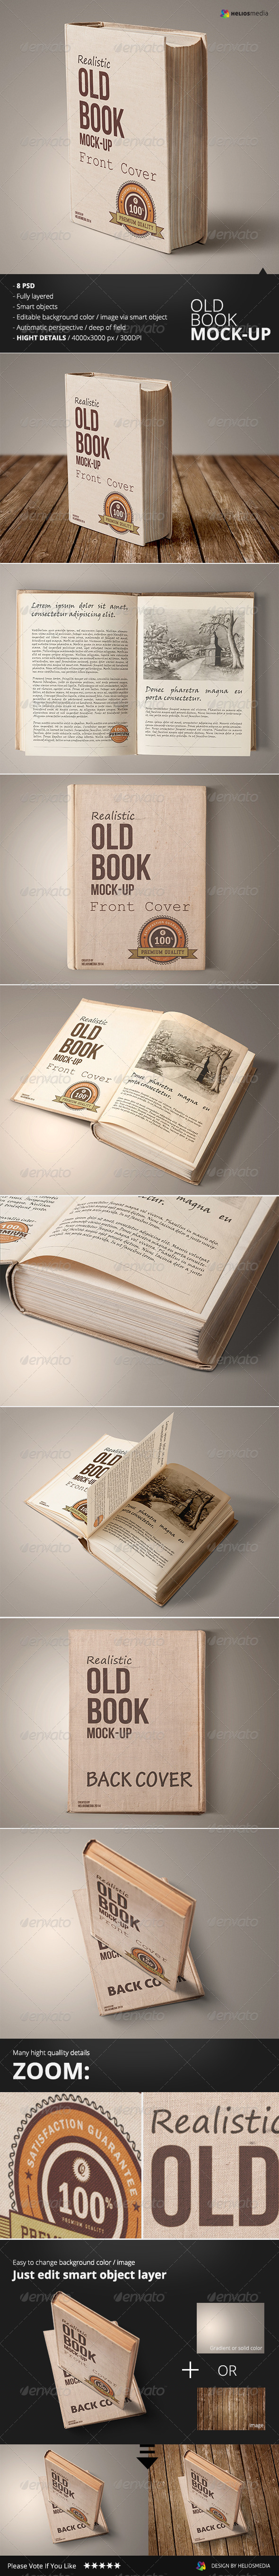 Old Book Mockup - Books Print